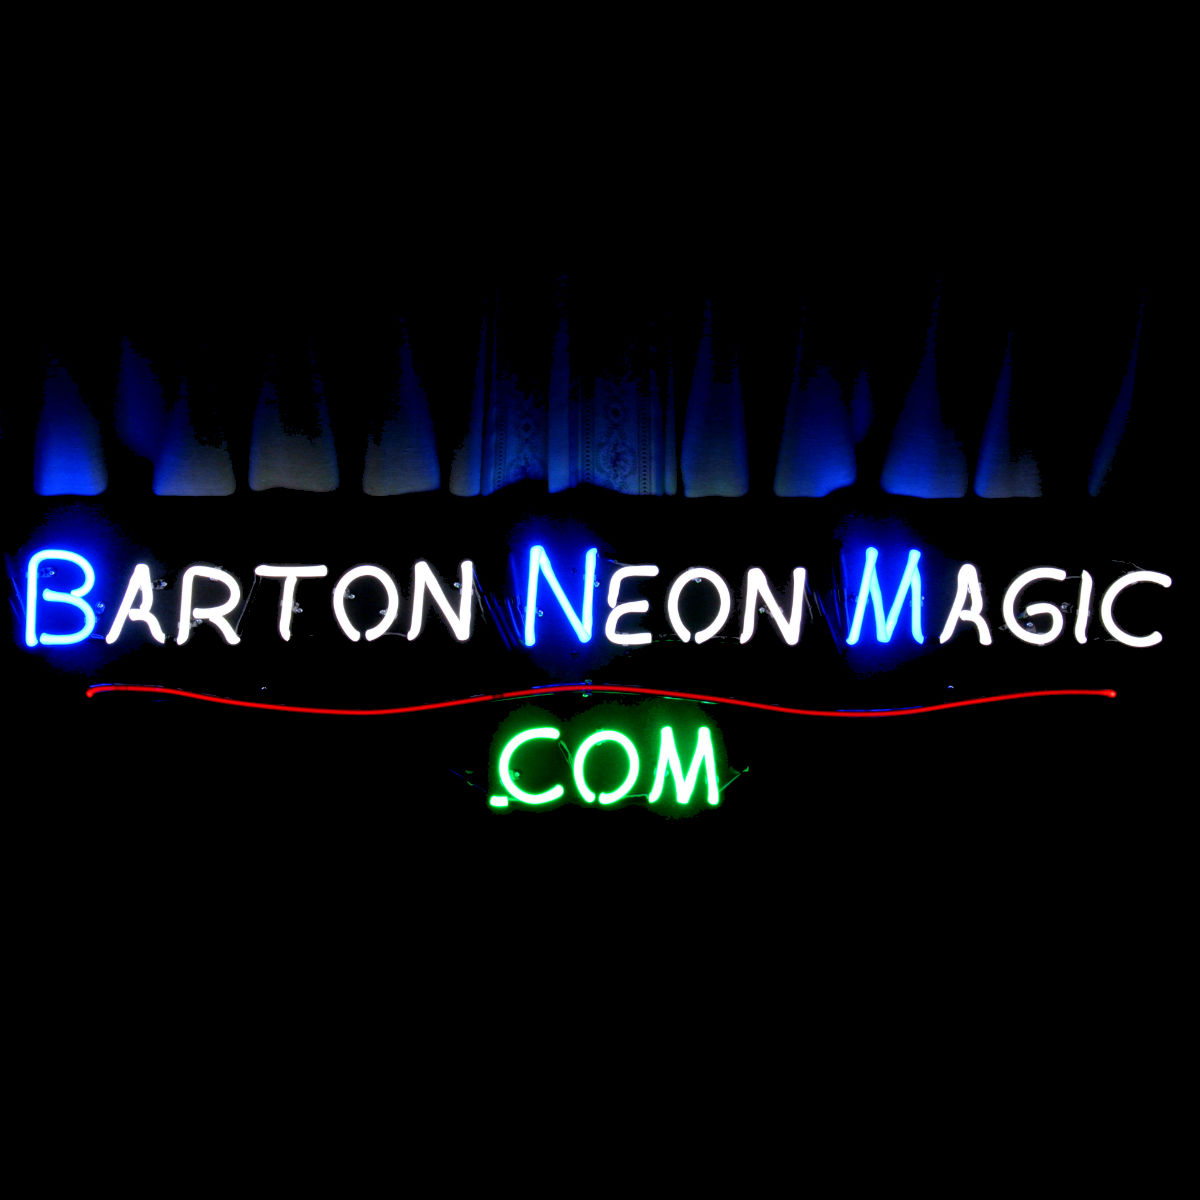 Quality custom neon lighting by John Barton - Famous USA Neon Glass Artist - BartonNeonMagic.com